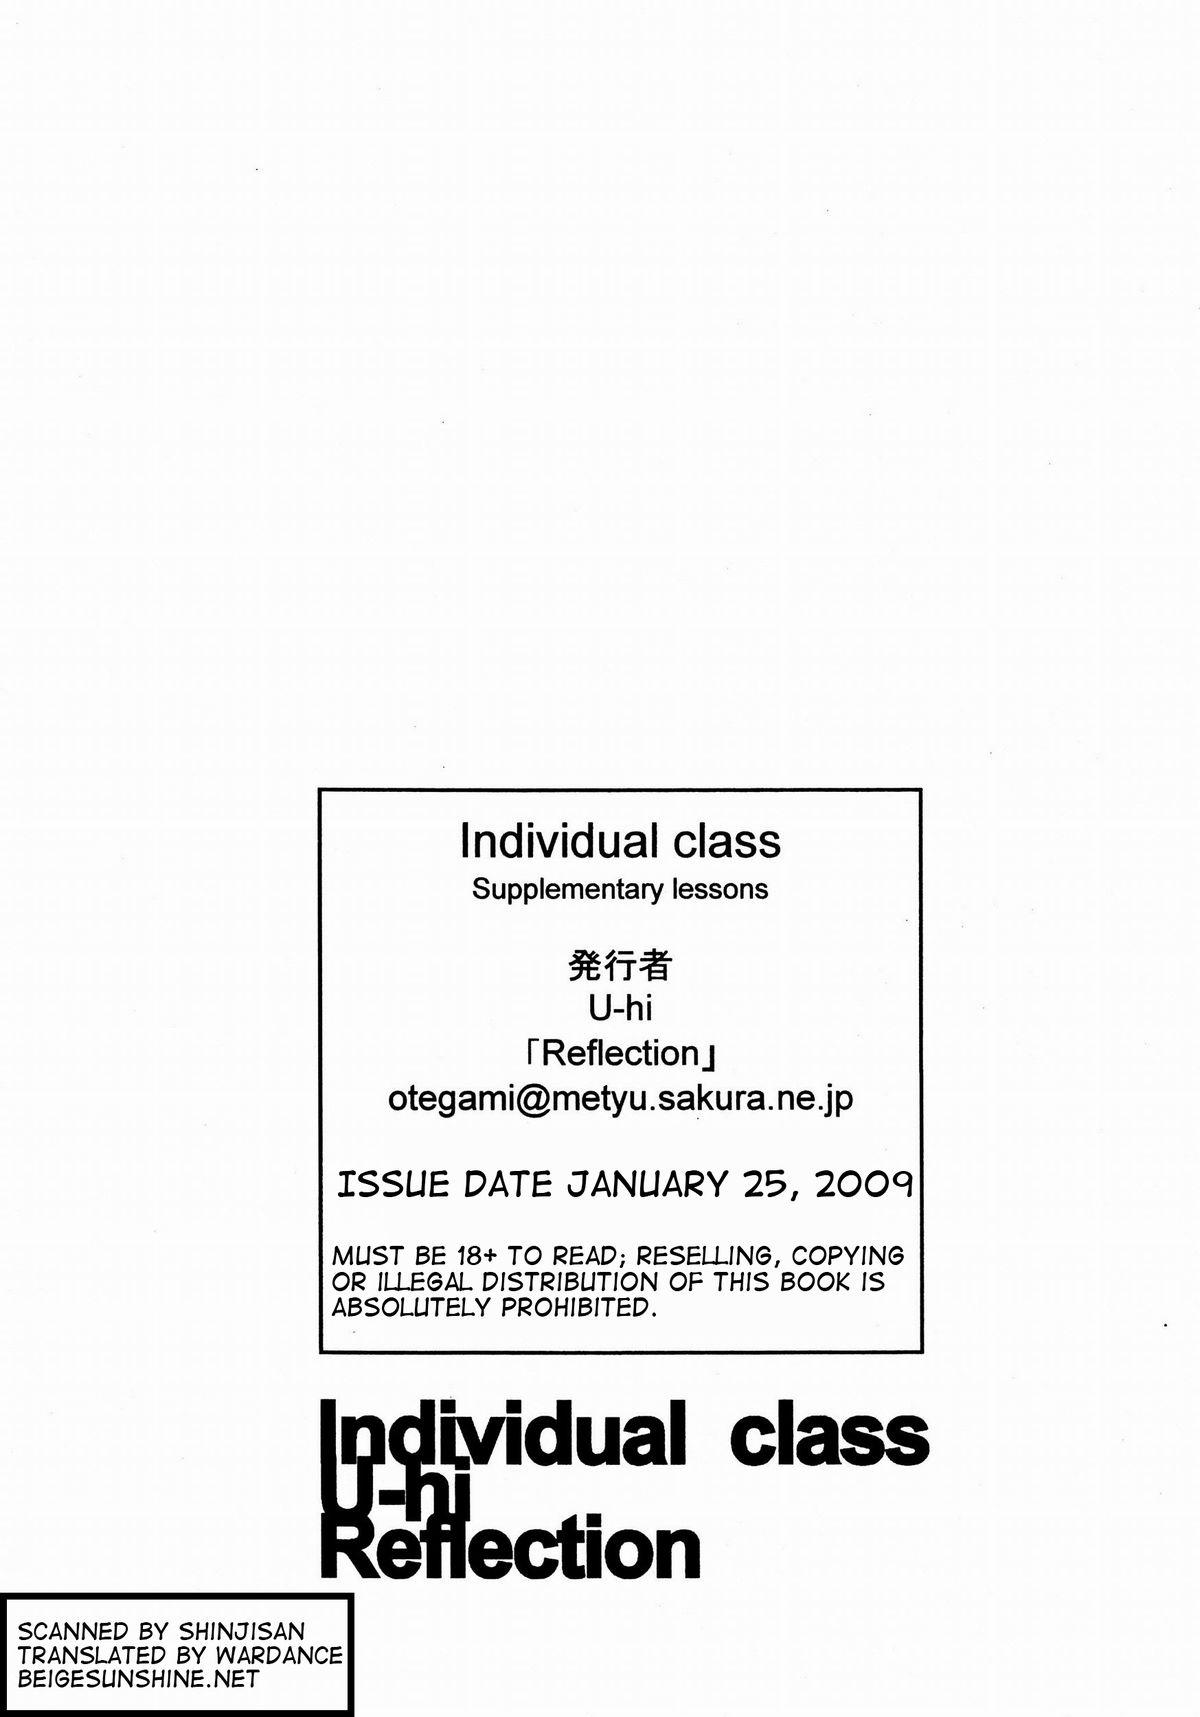 Individual Class Supplementary Lessons 13